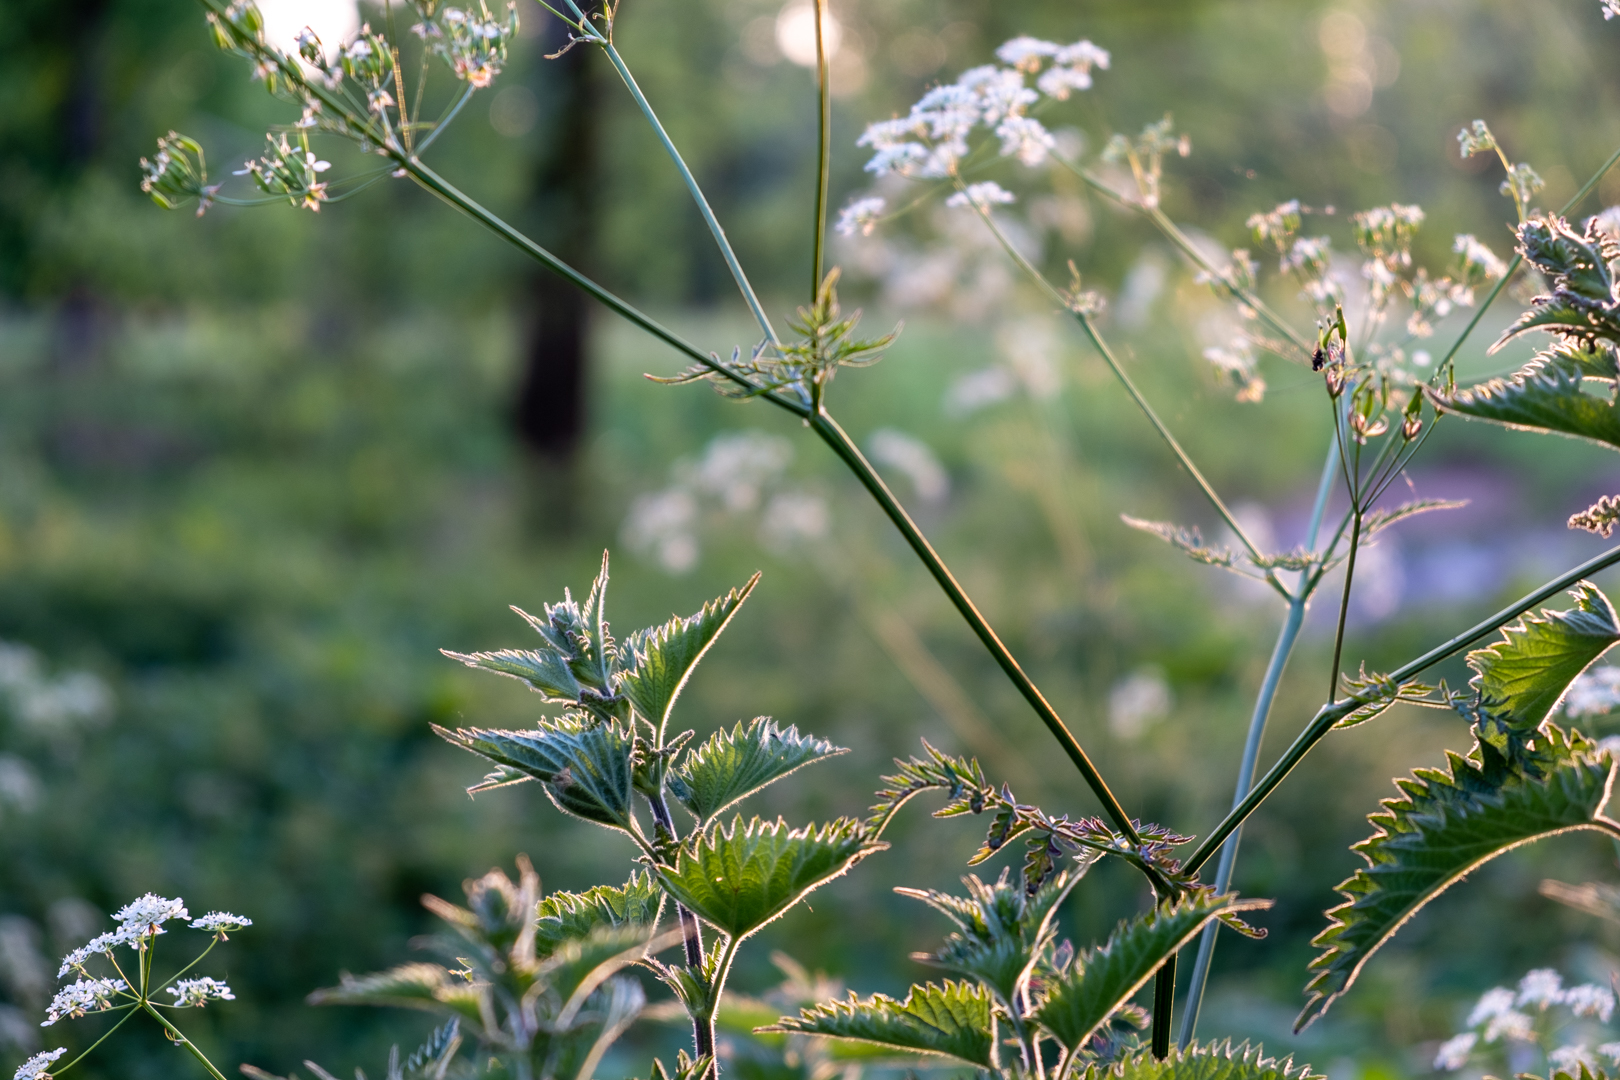 Nettles in the evening sun_Catherine Whi